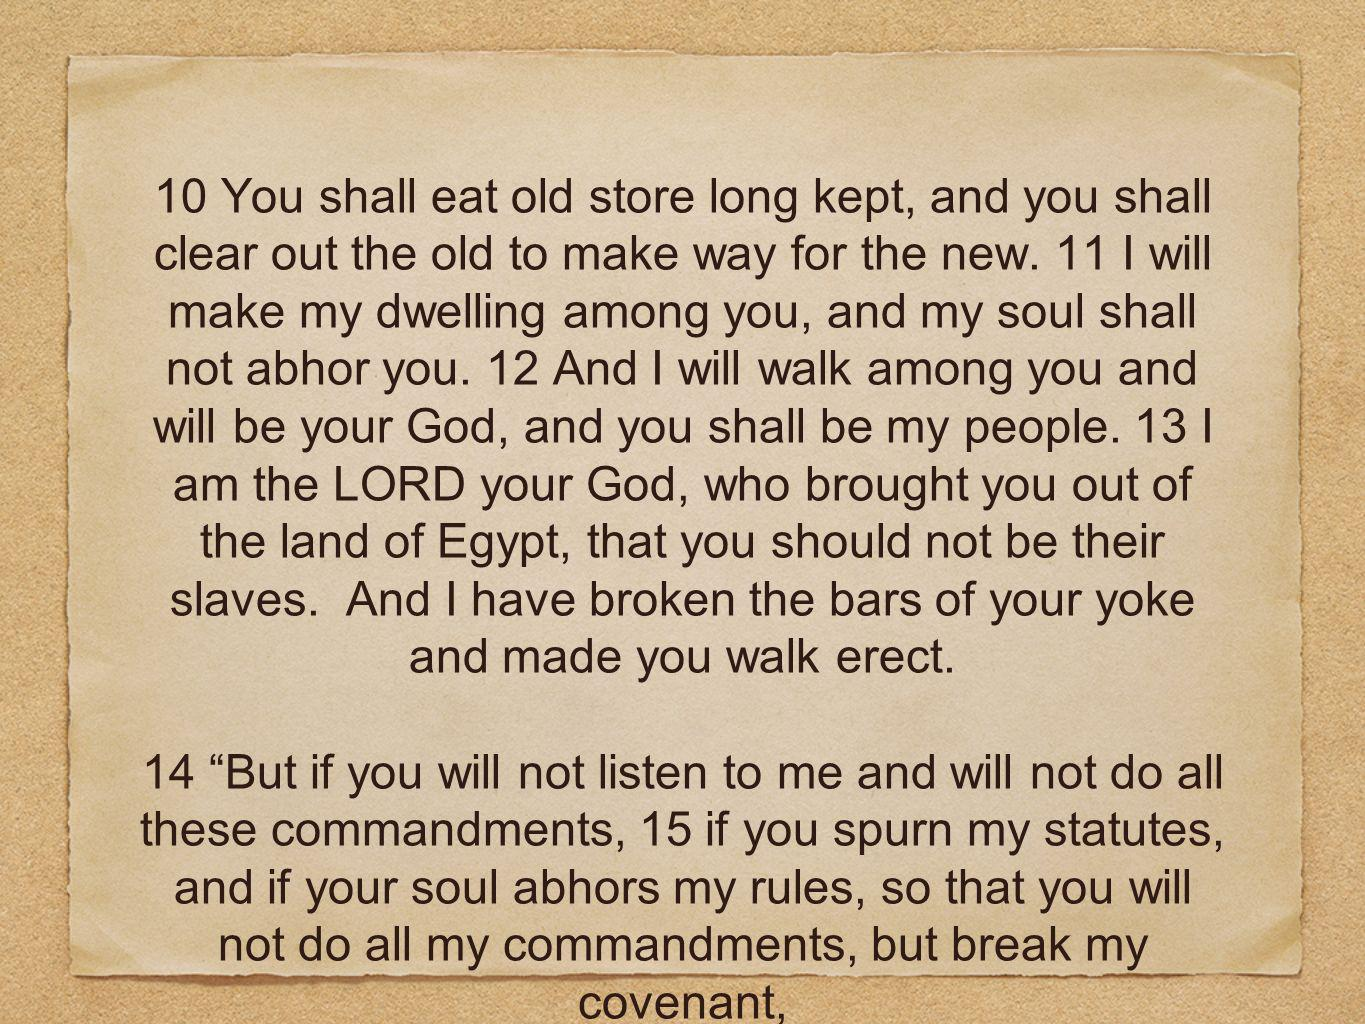 10 You shall eat old store long kept, and you shall clear out the old to make way for the new. 11 I will make my dwelling among you, and my soul shall